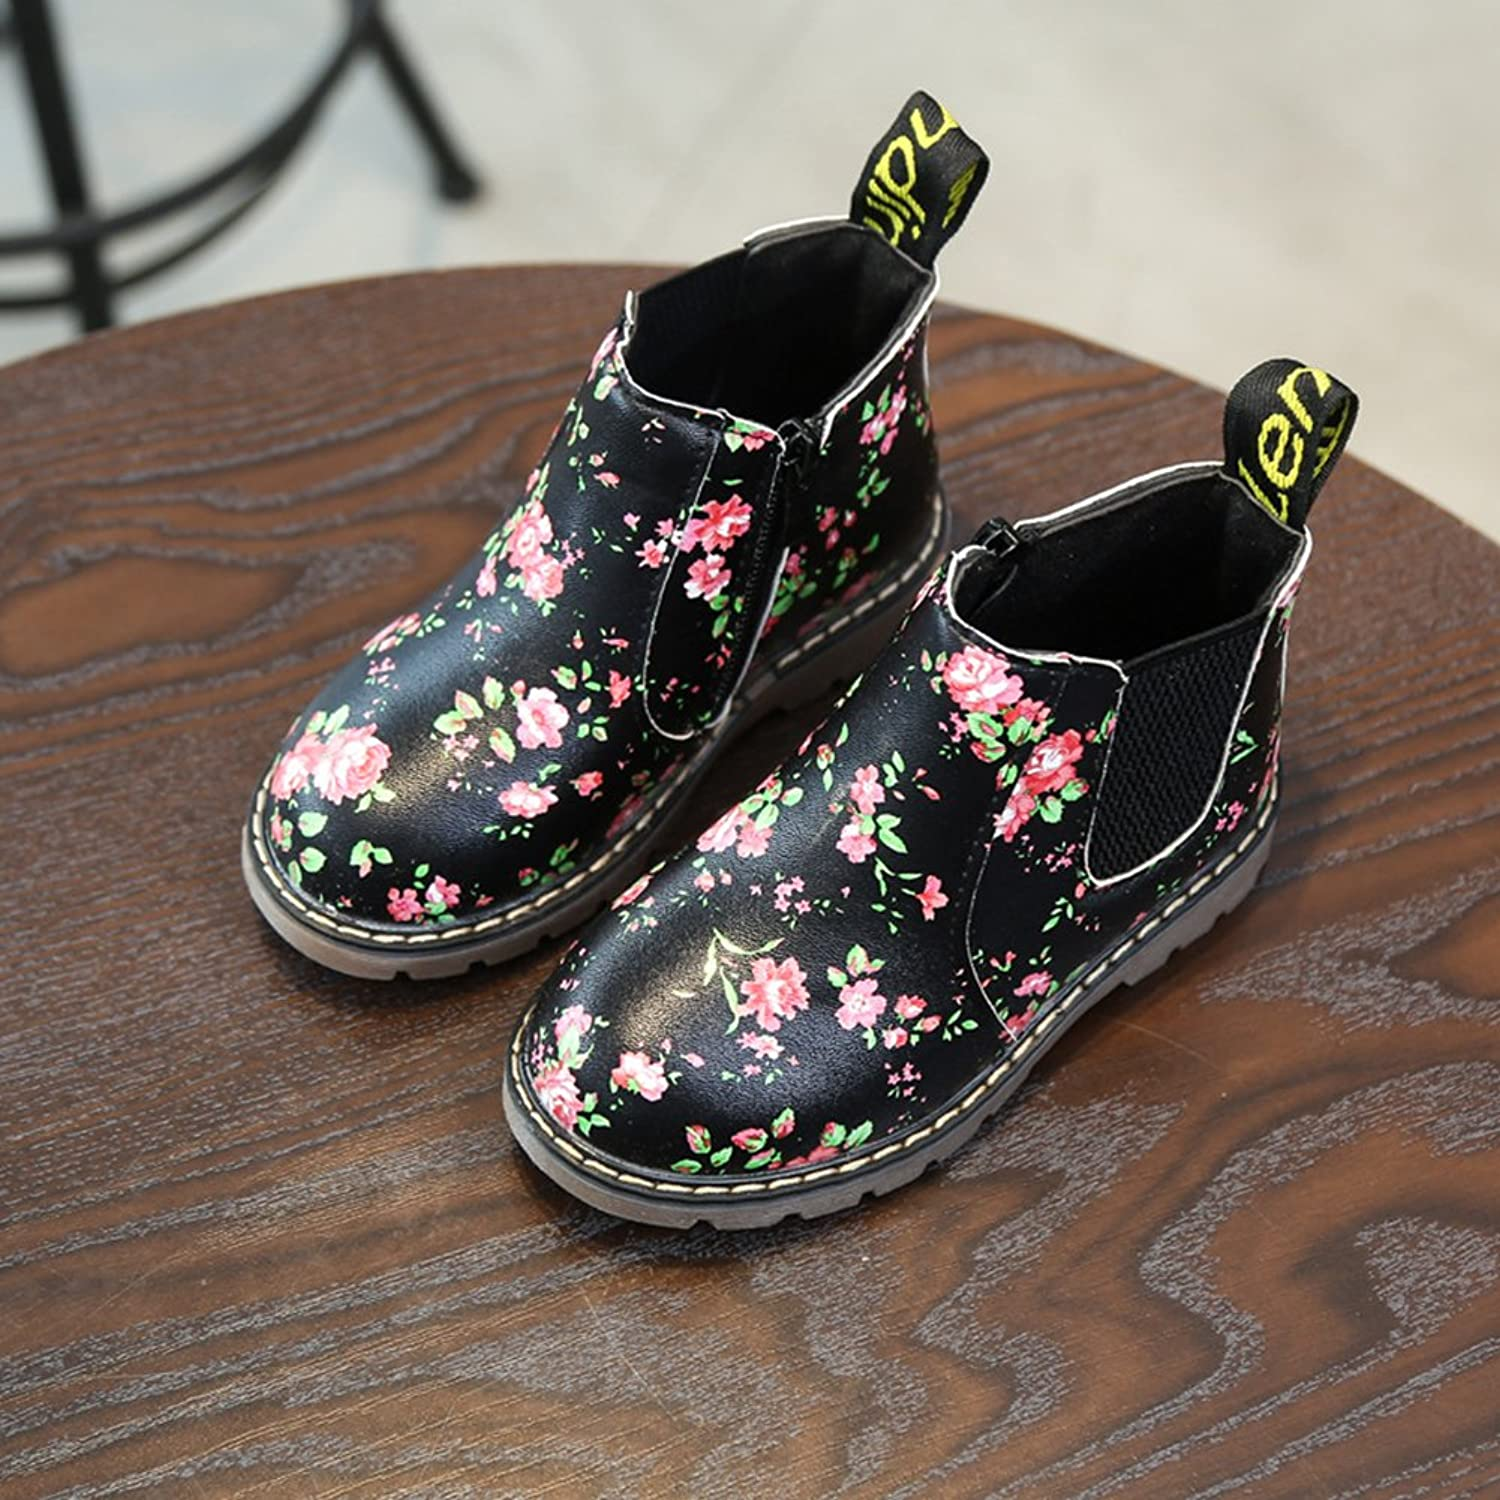 Juleya Girls Chelsea Boots - Princess Leather Shoes Kids Boots Winter Shoes  Soft Retro Casual Shoes With Floral Print Ankle Boots Non-Slip Shoes Black  Gray: ...